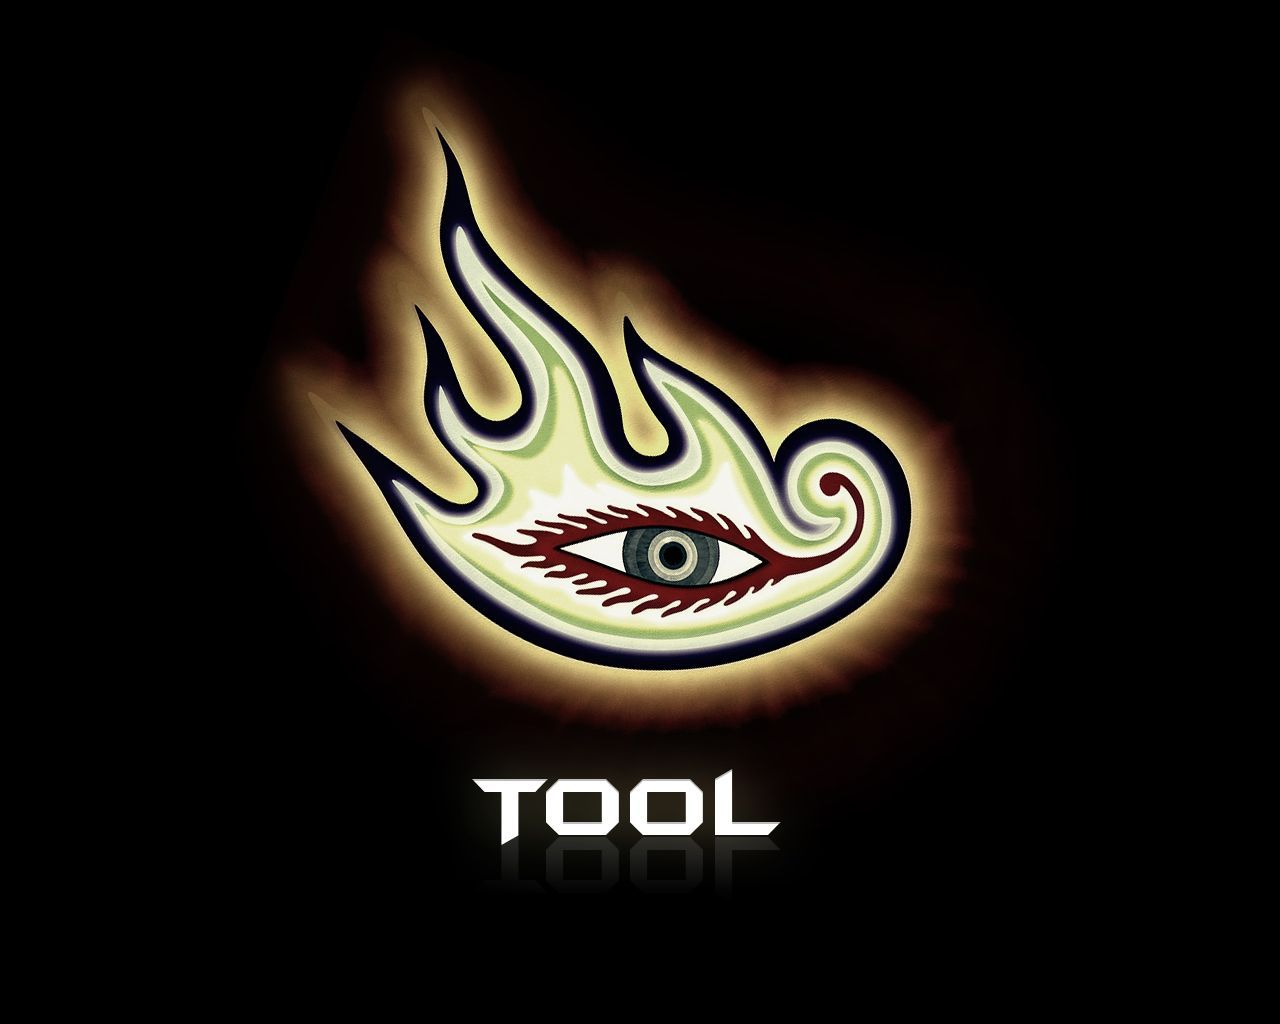 Quotes From Tool Lyrics In 2020 Tool Band Artwork Tool Artwork Tool Lyrics [ jpg ]